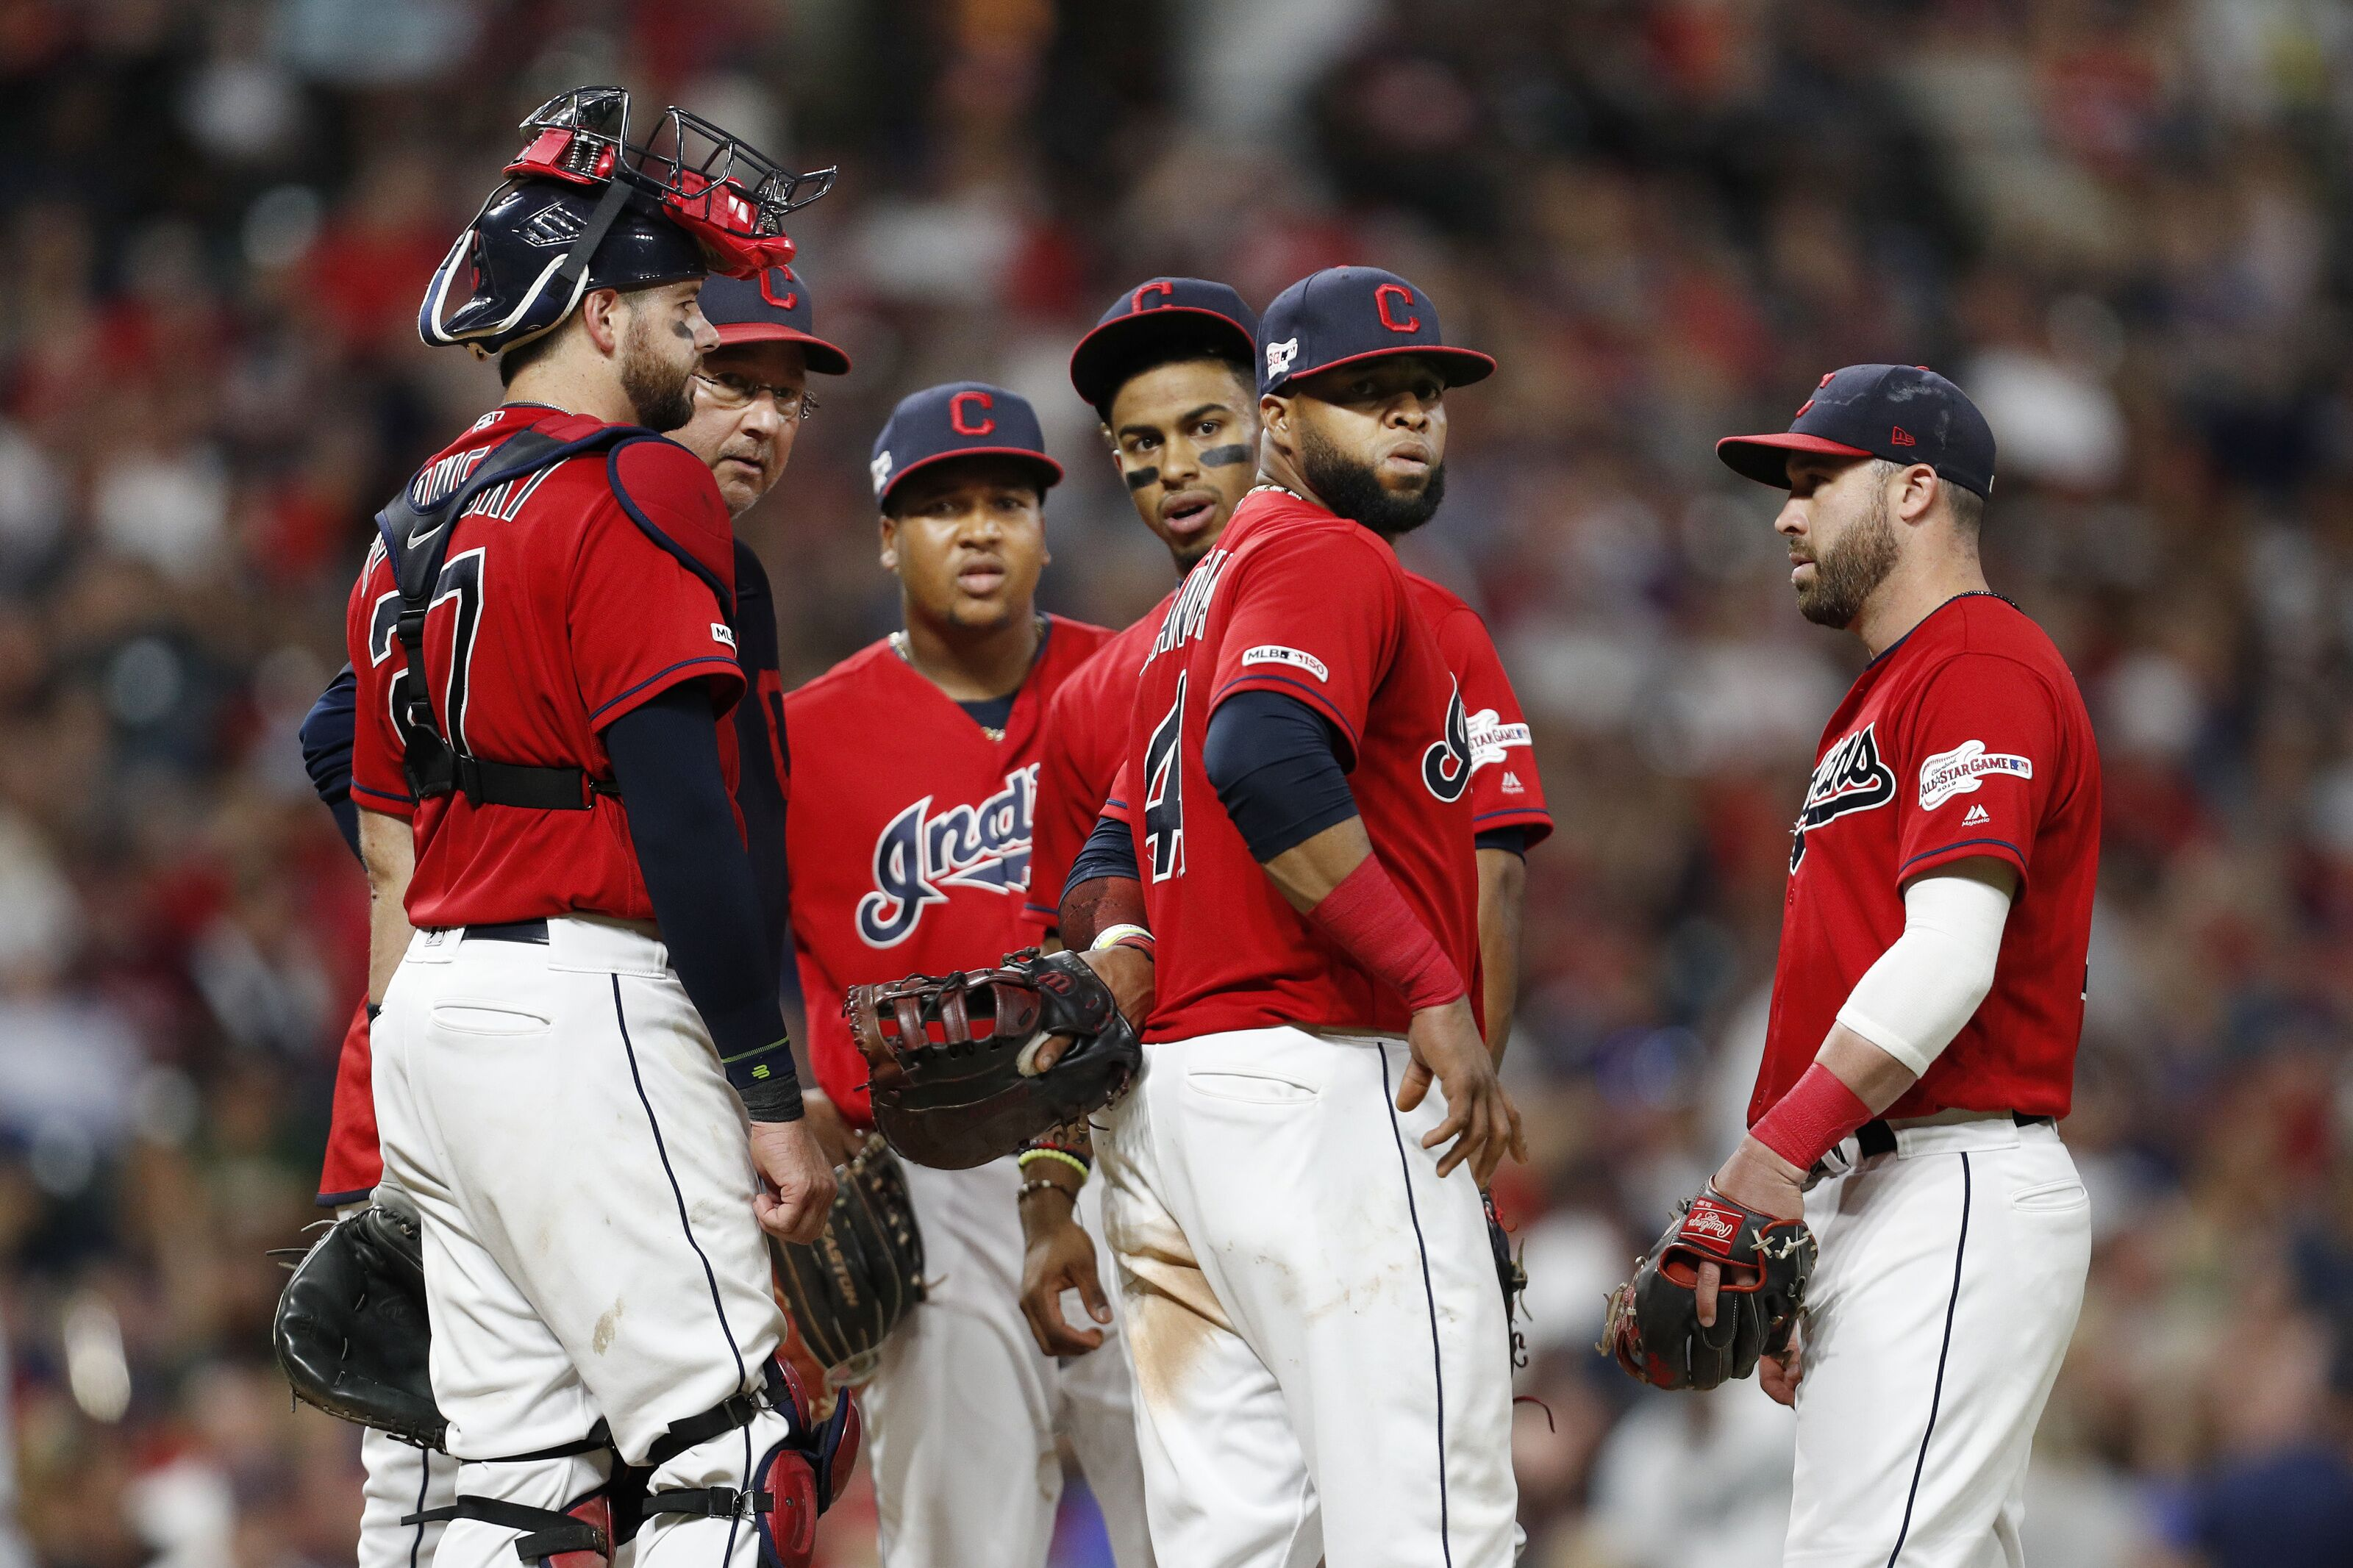 Cleveland Indians: Projecting the 2020 payroll